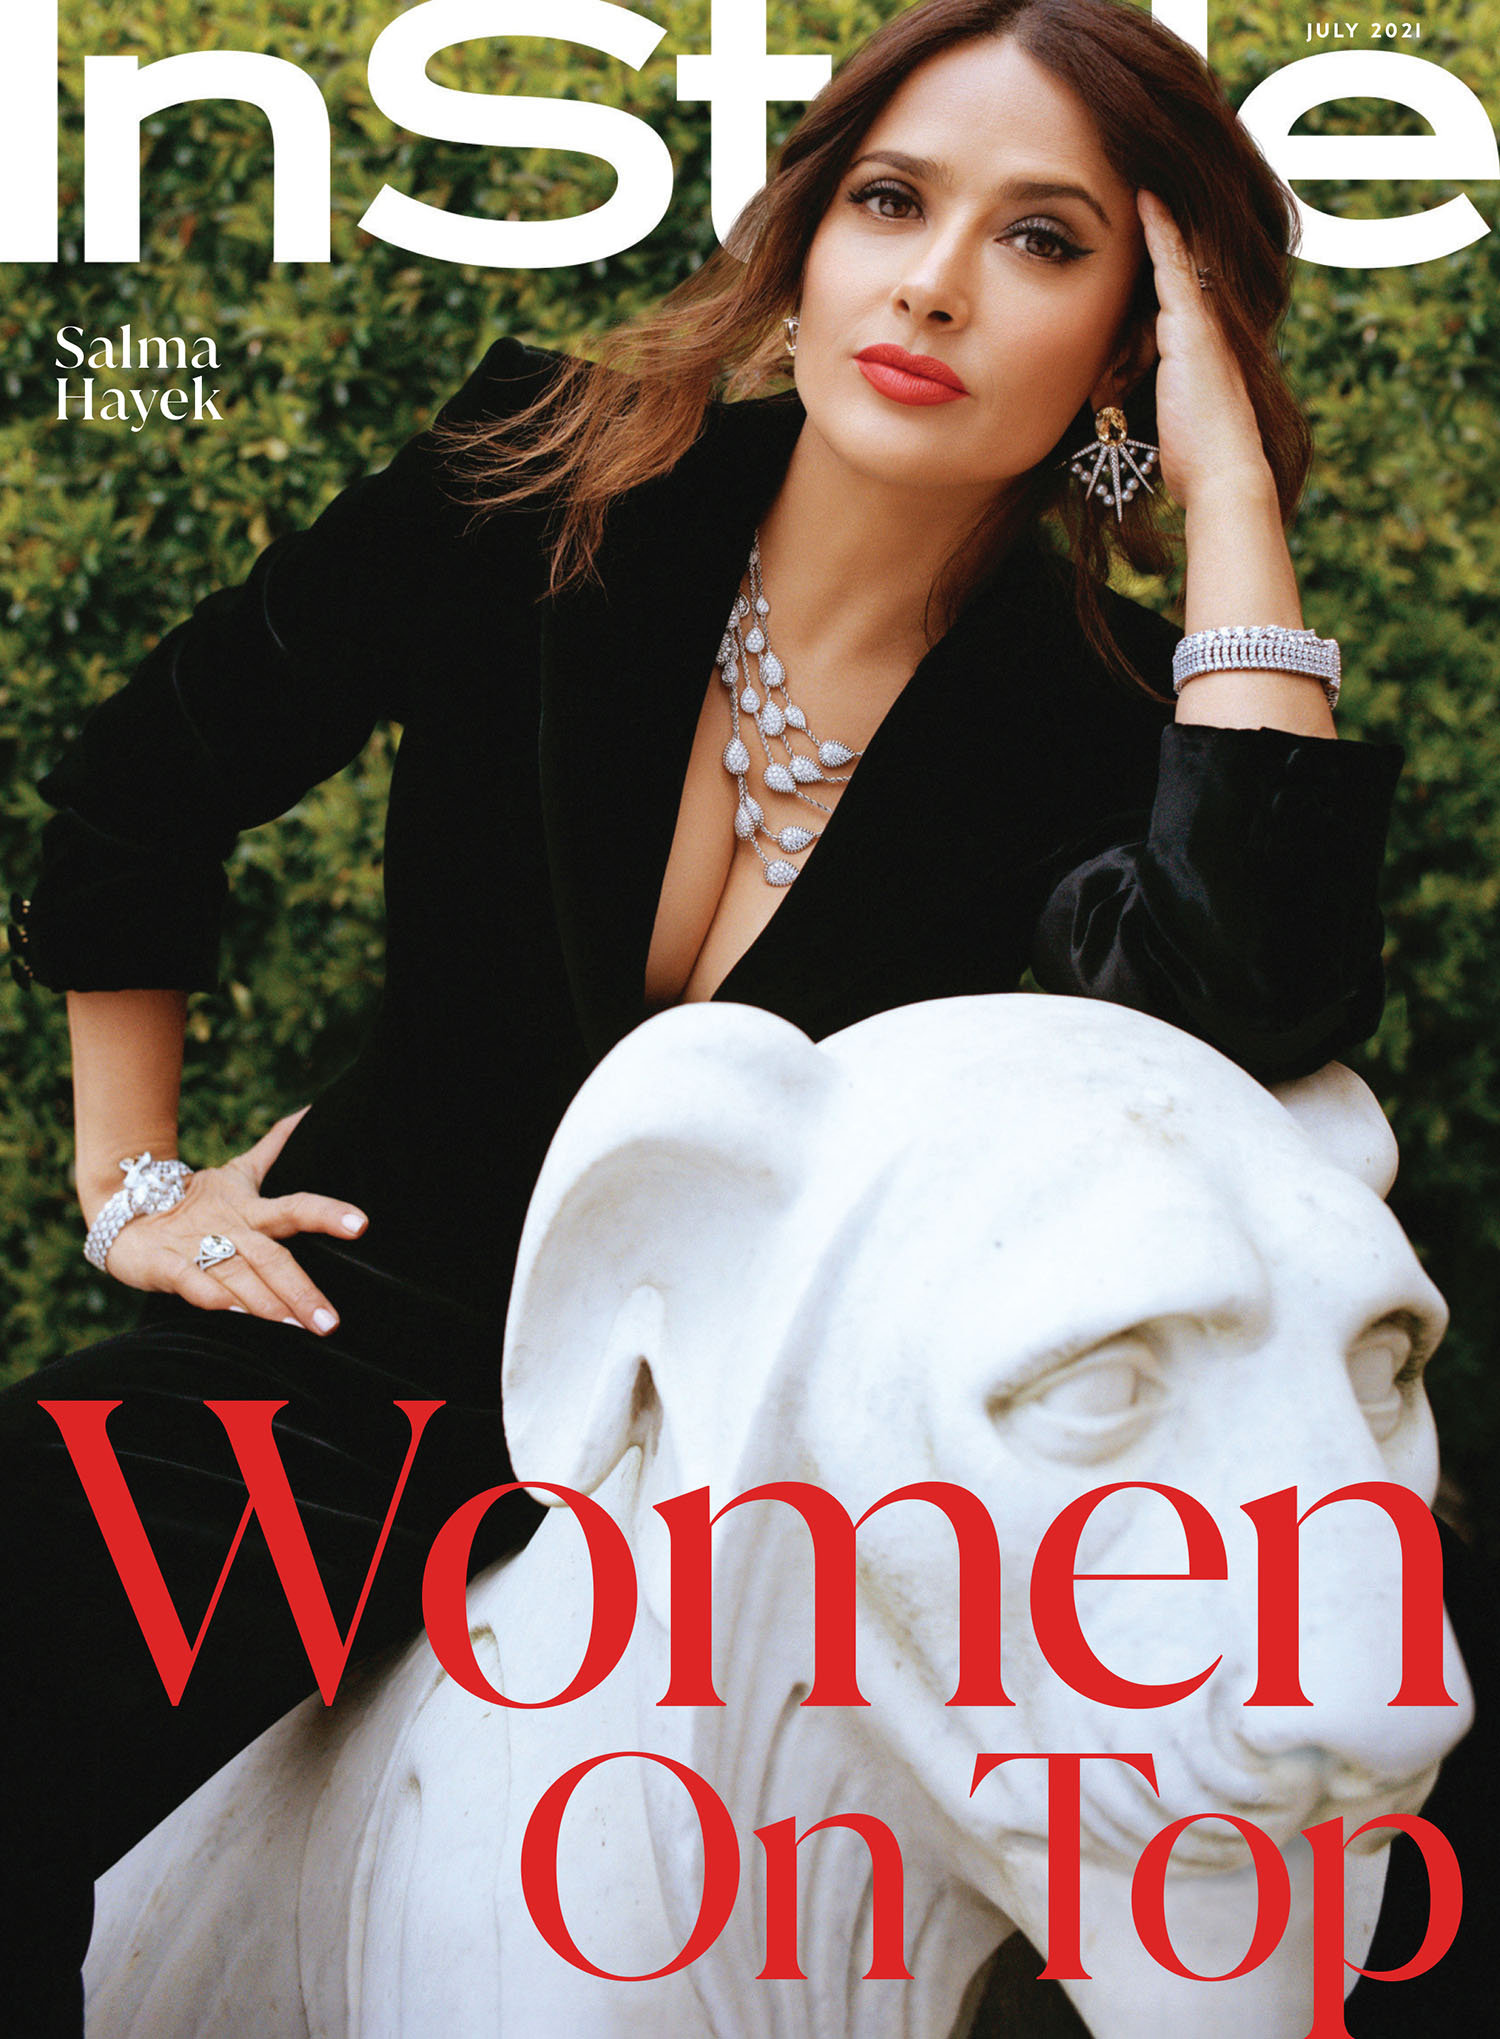 Salma Hayek covers InStyle US July 2021 by Charlotte Hadden